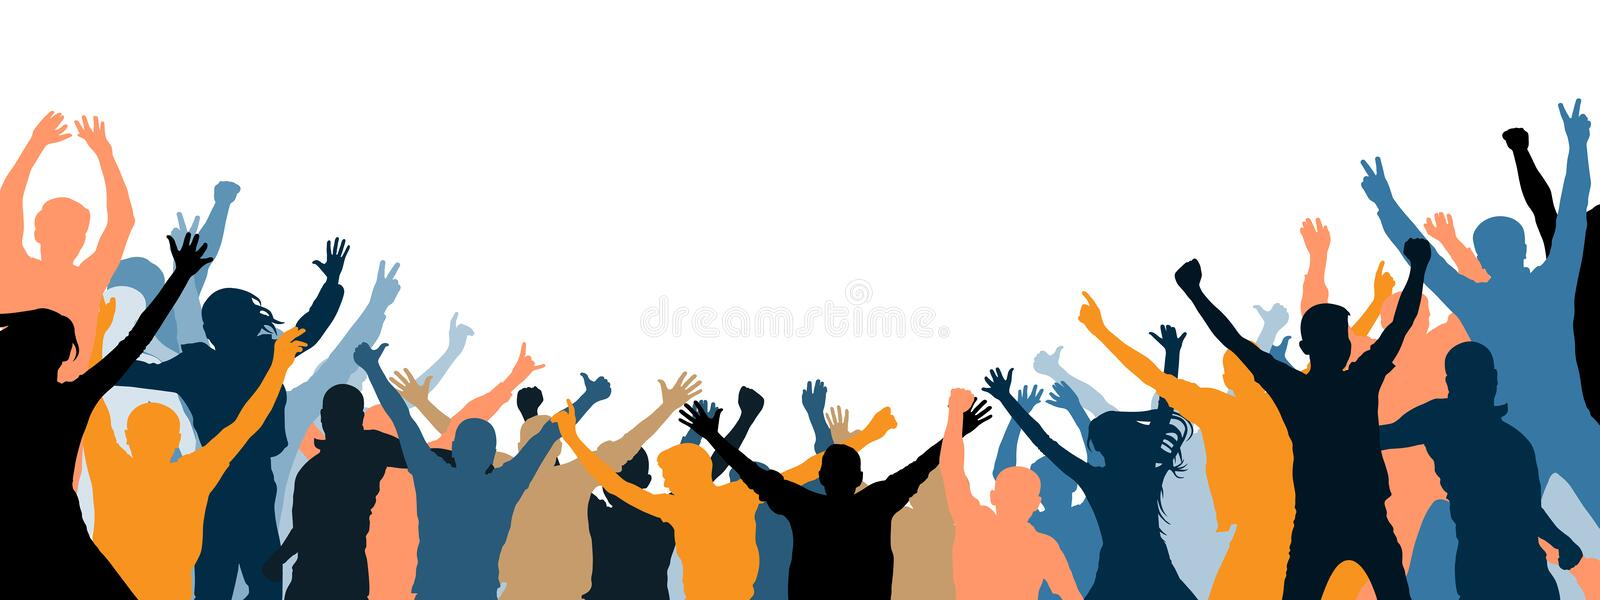 Crowd of people applauding. Isolated separate people, silhouette. Cheer audience. Party, applause. Fans dance concert, disco royalty free illustration